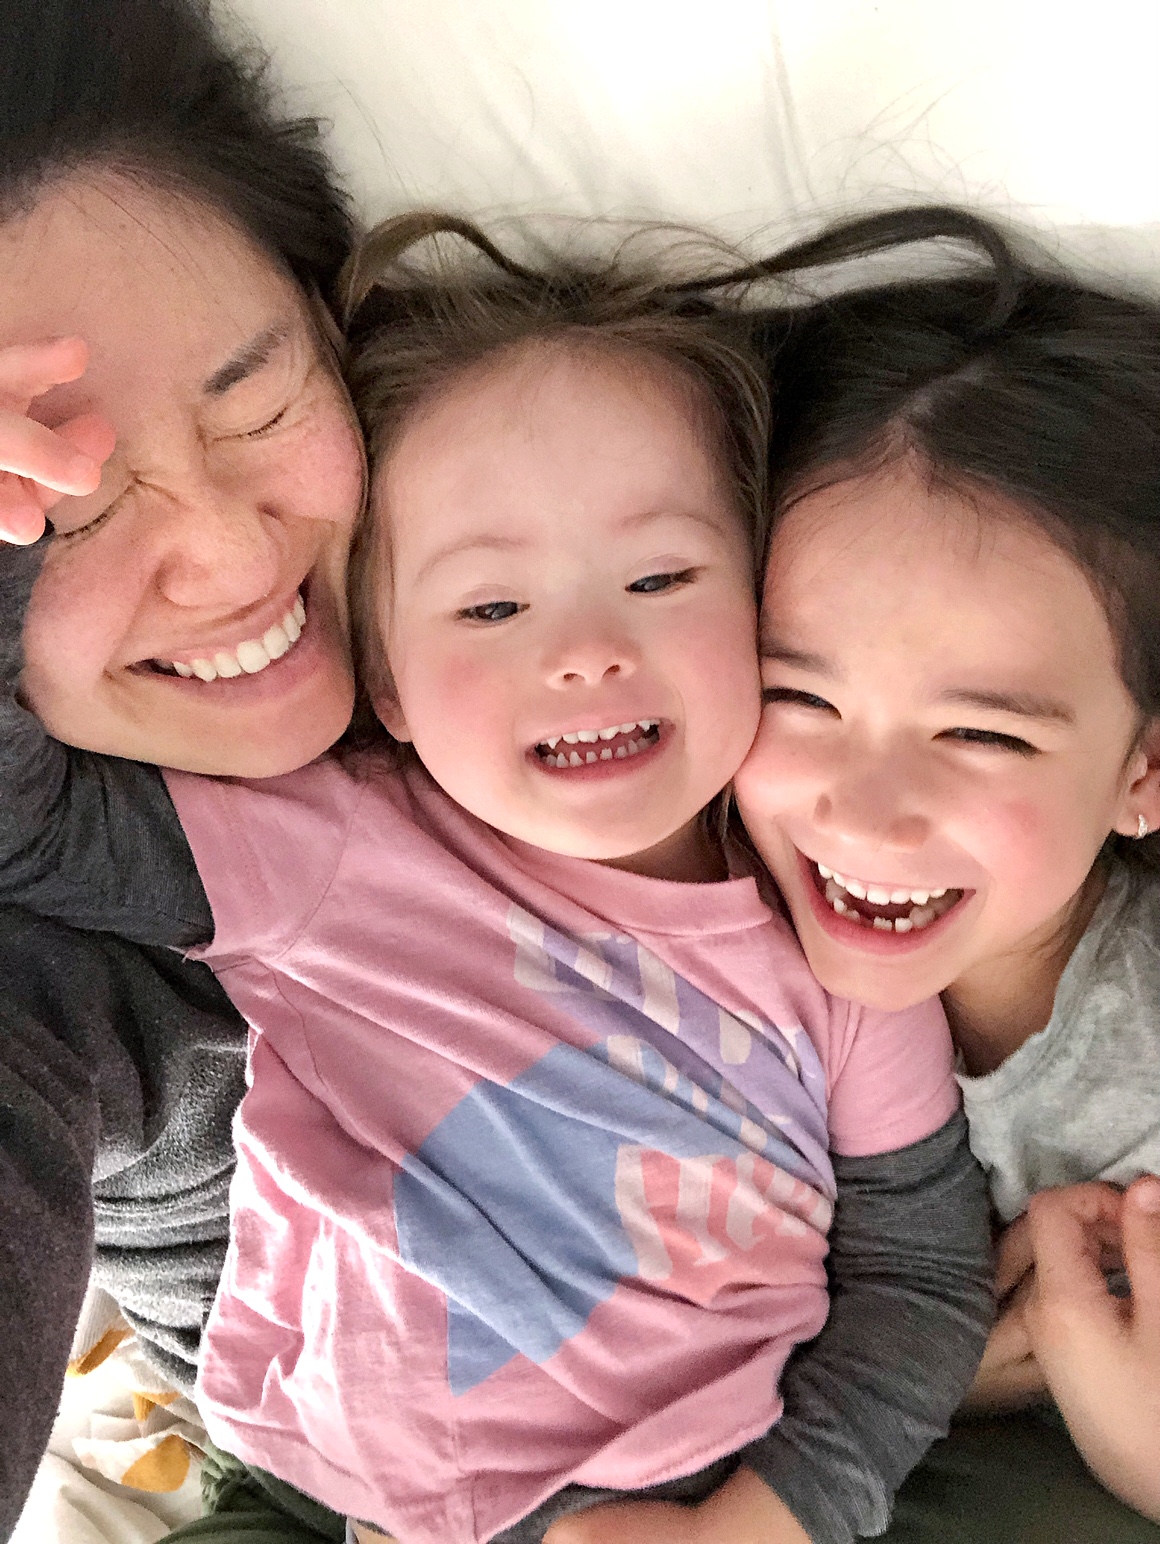 mother to a daughter with down syndrome